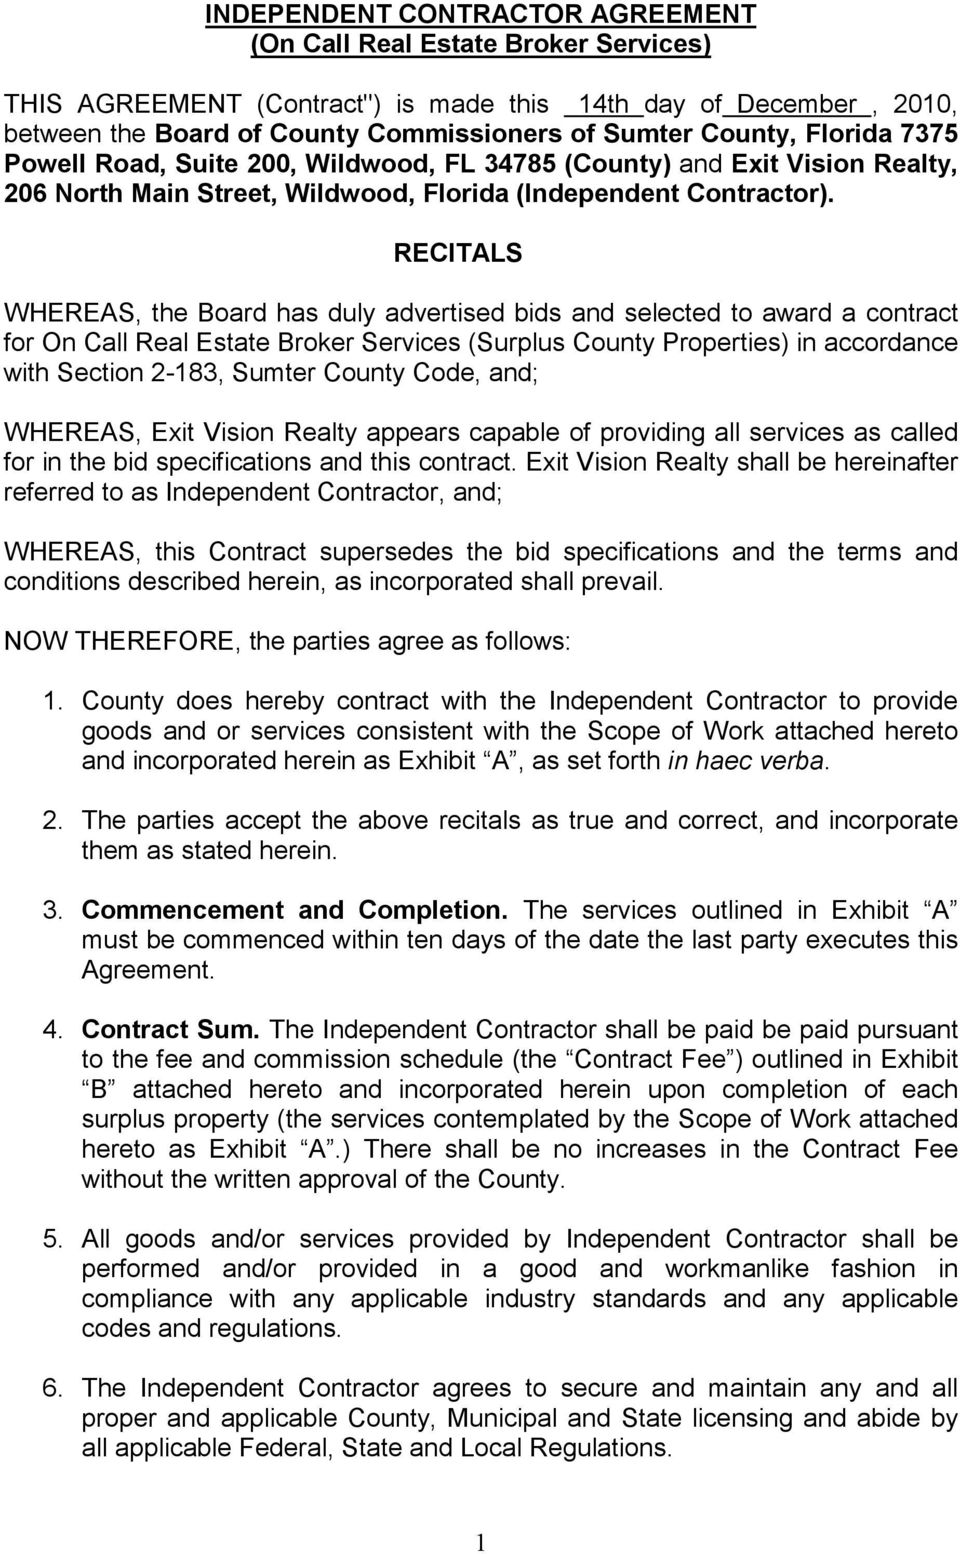 RECITALS WHEREAS, the Board has duly advertised bids and selected to award a contract for On Call Real Estate Broker Services (Surplus County Properties) in accordance with Section 2-183, Sumter